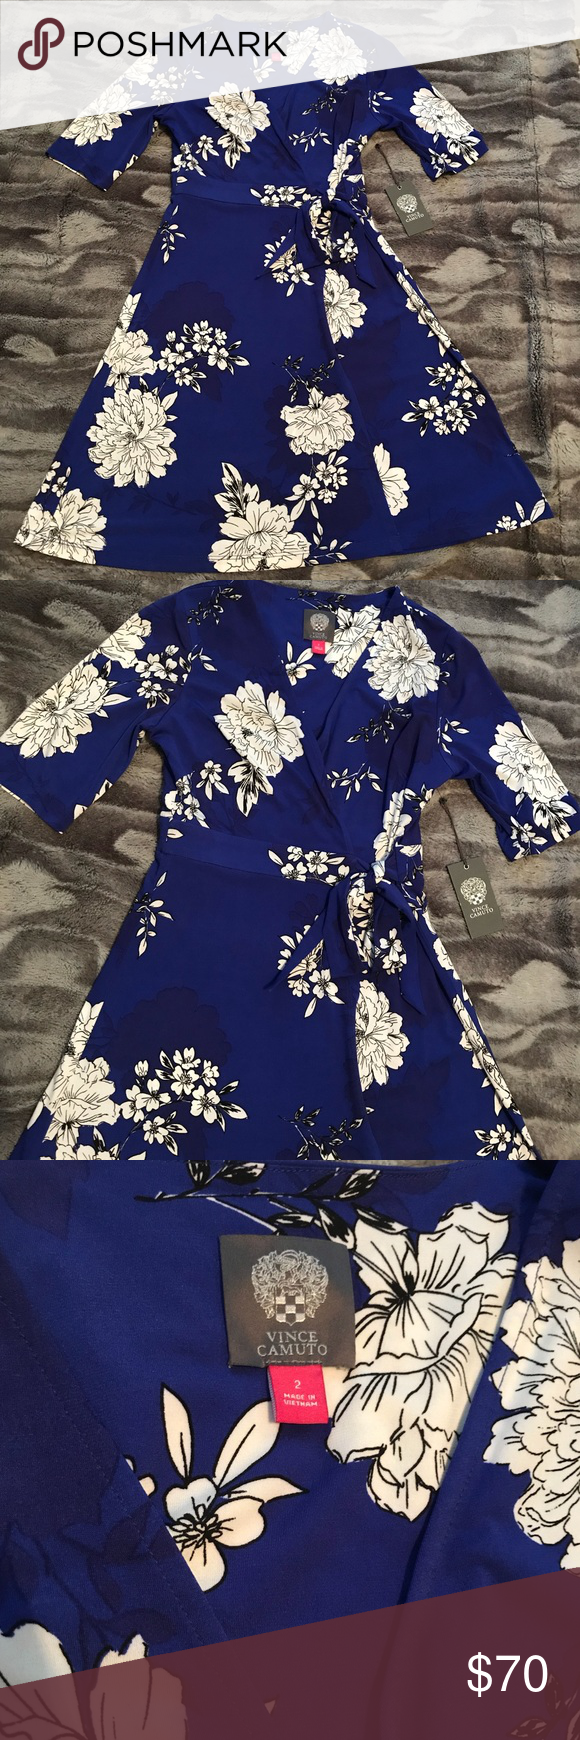 Vince Camuto Blue And White Floral Dress Sz2 White Floral Dress Dresses Clothes Design [ 1740 x 580 Pixel ]